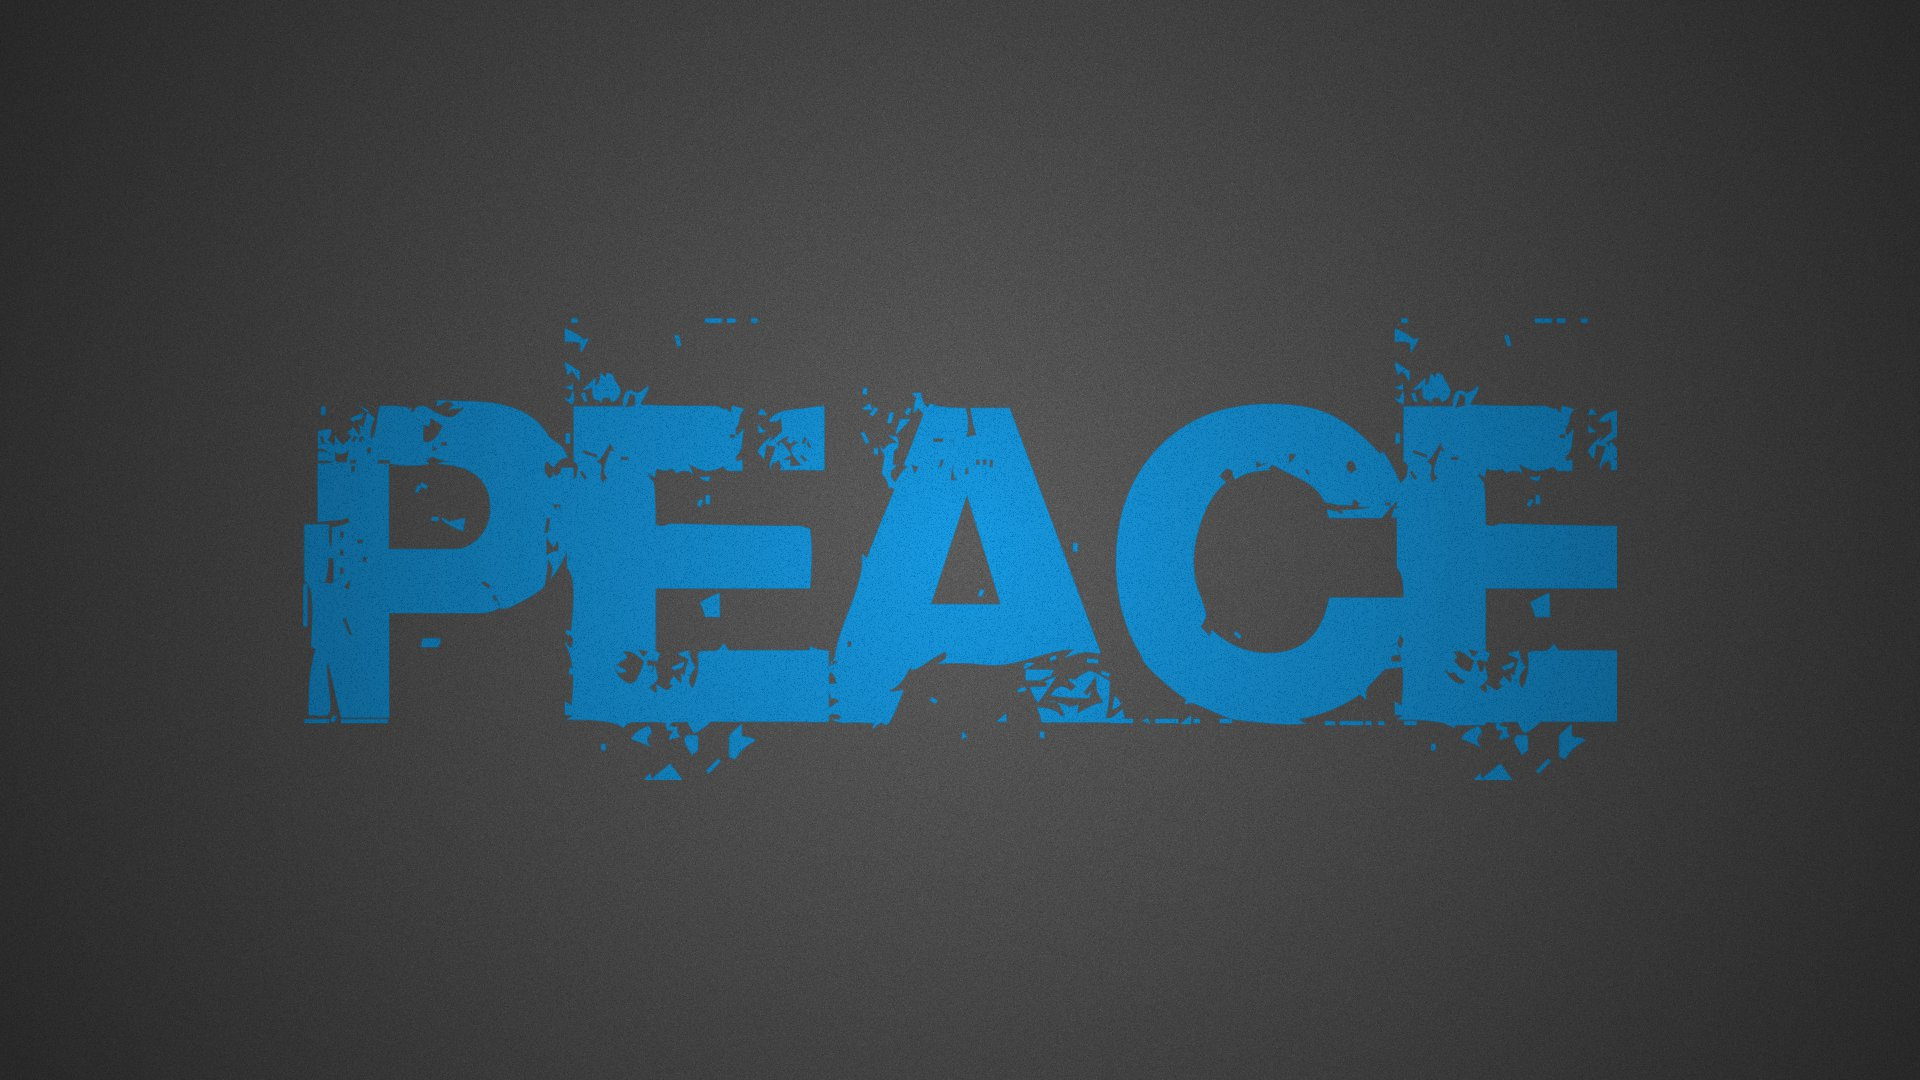 tumblr backgrounds peace 2 - photo #12